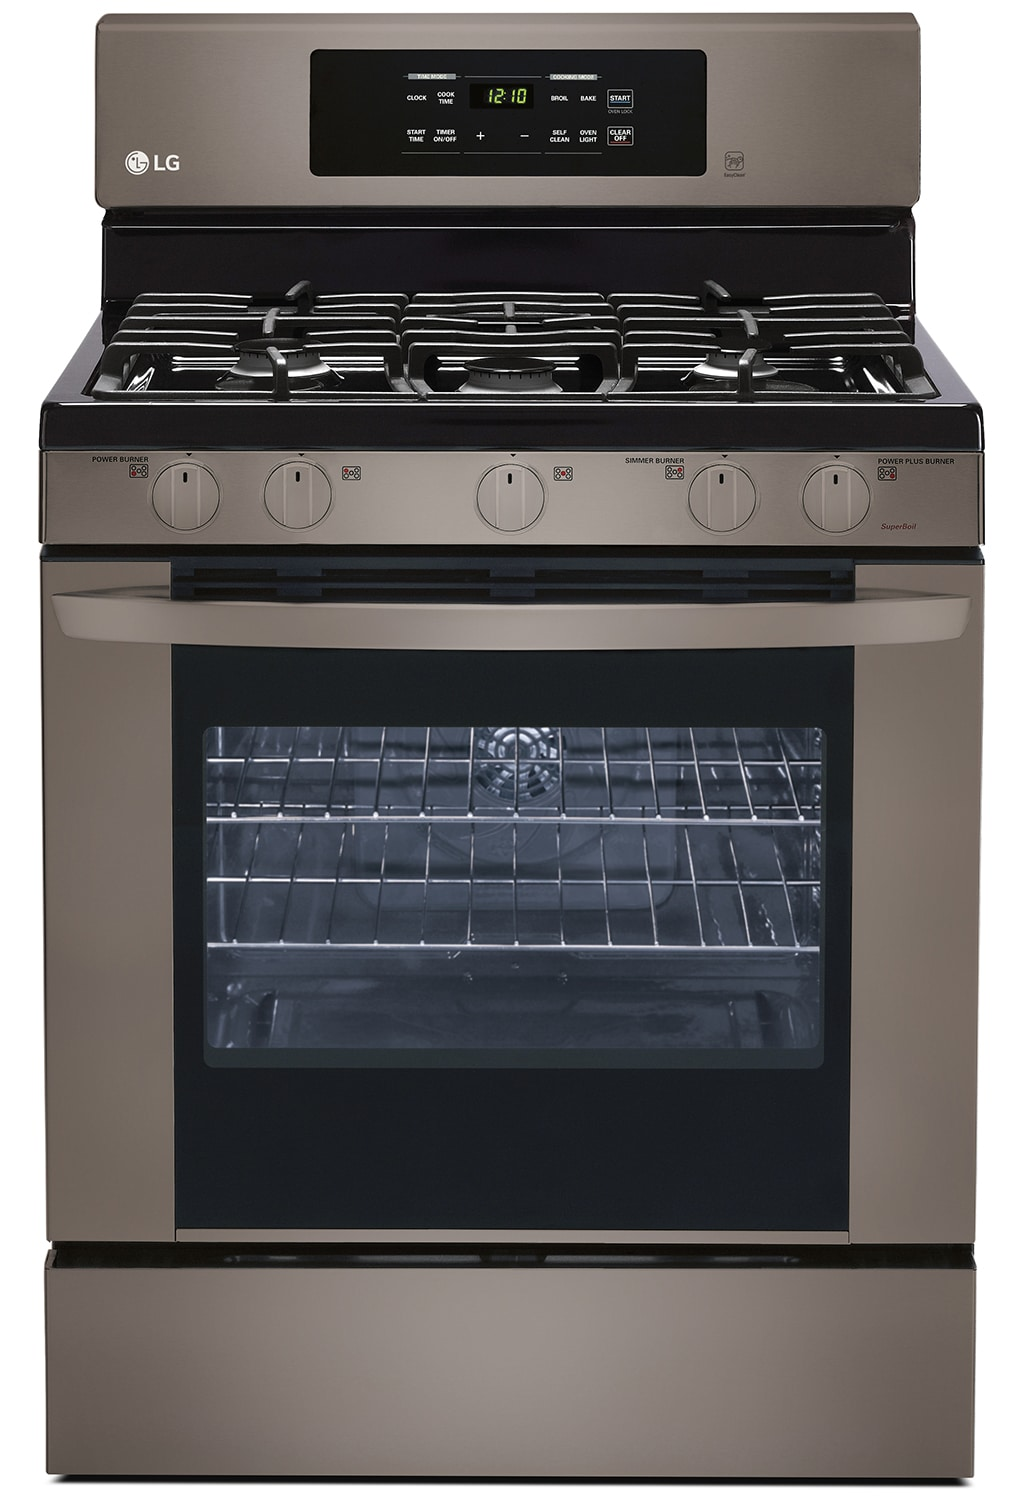 LG Appliances Black Stainless Steel Gas Convection Range (5.4 Cu. Ft.) - LRG3081BD